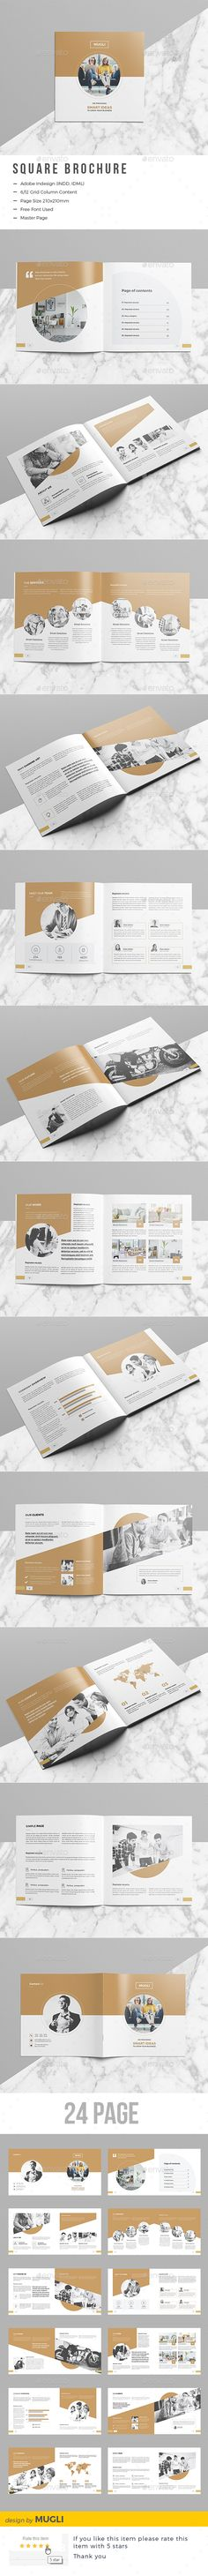 Corporate Square Brochure — InDesign INDD #informational #book • Download ➝ https://graphicriver.net/item/corporate-square-brochure/19576616?ref=pxcr